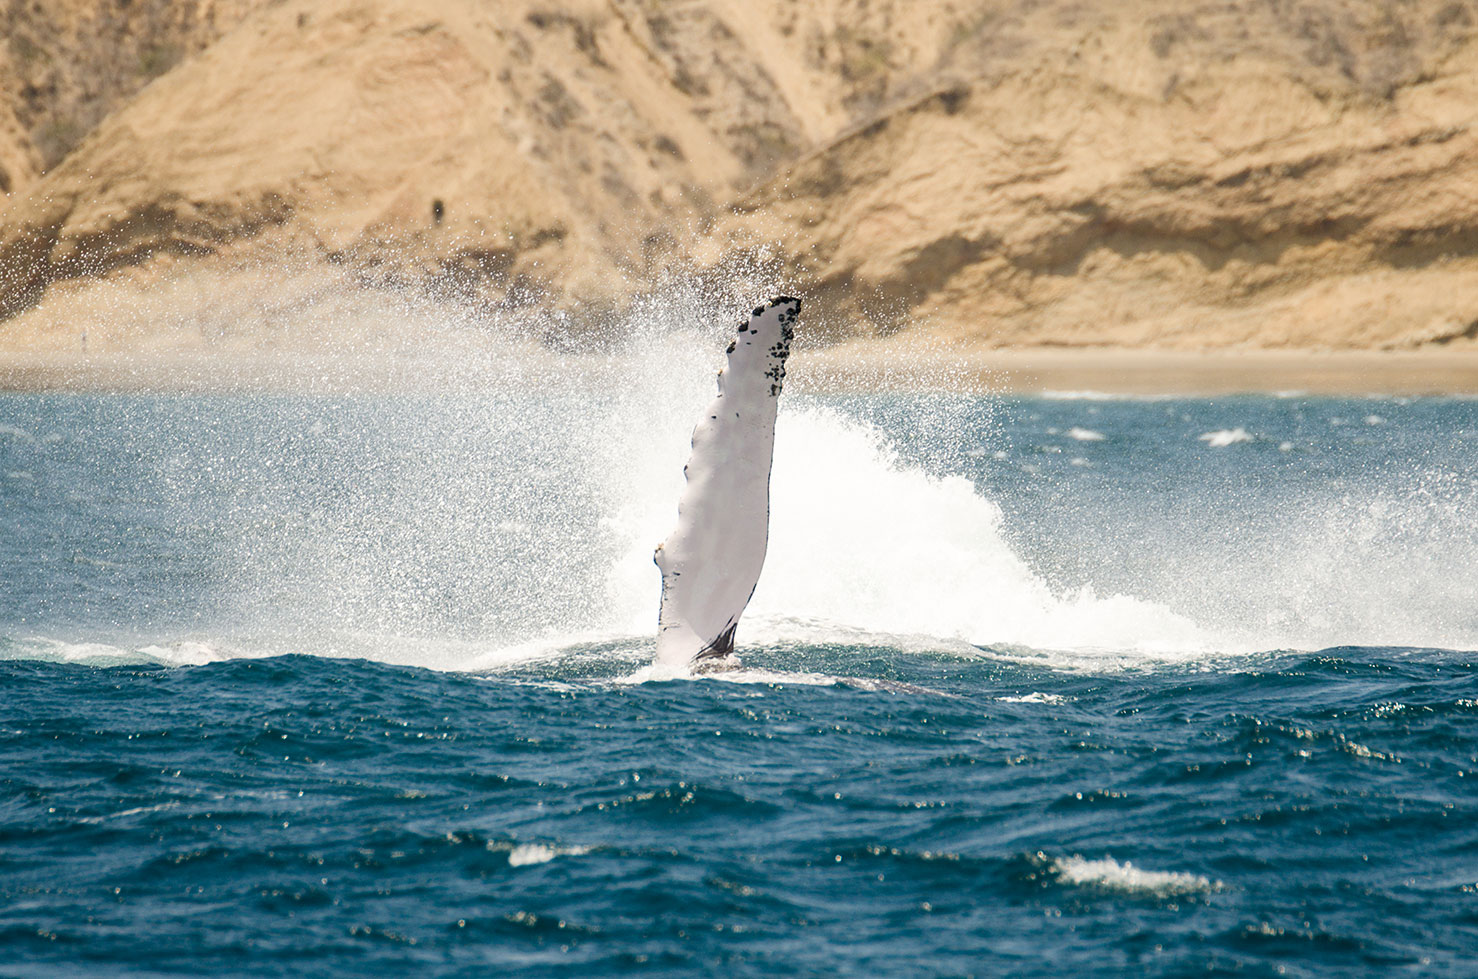 Whale Watching, San Mateo, 31 August 2019